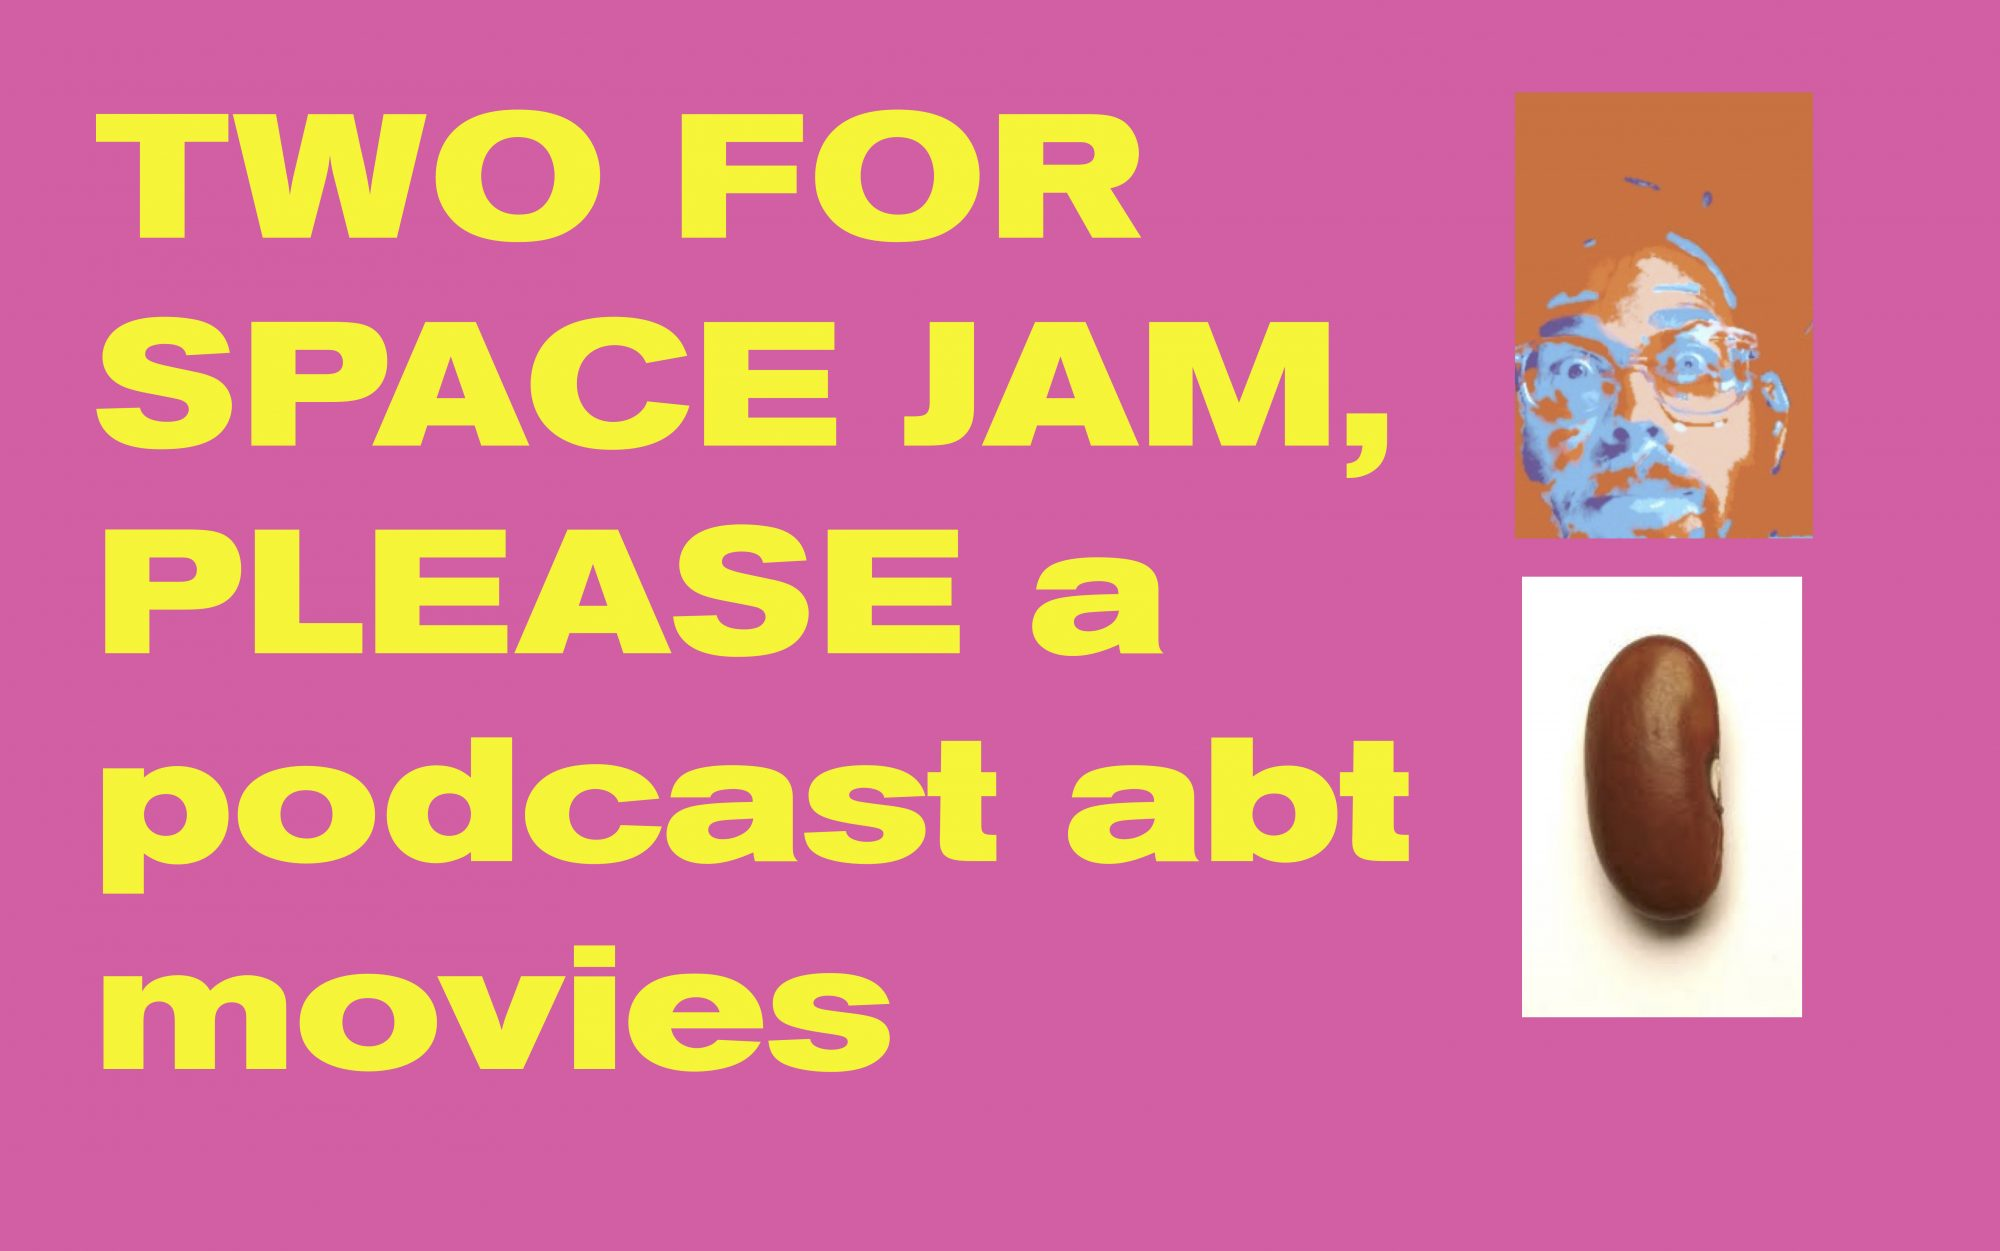 Two For Space Jam, Please